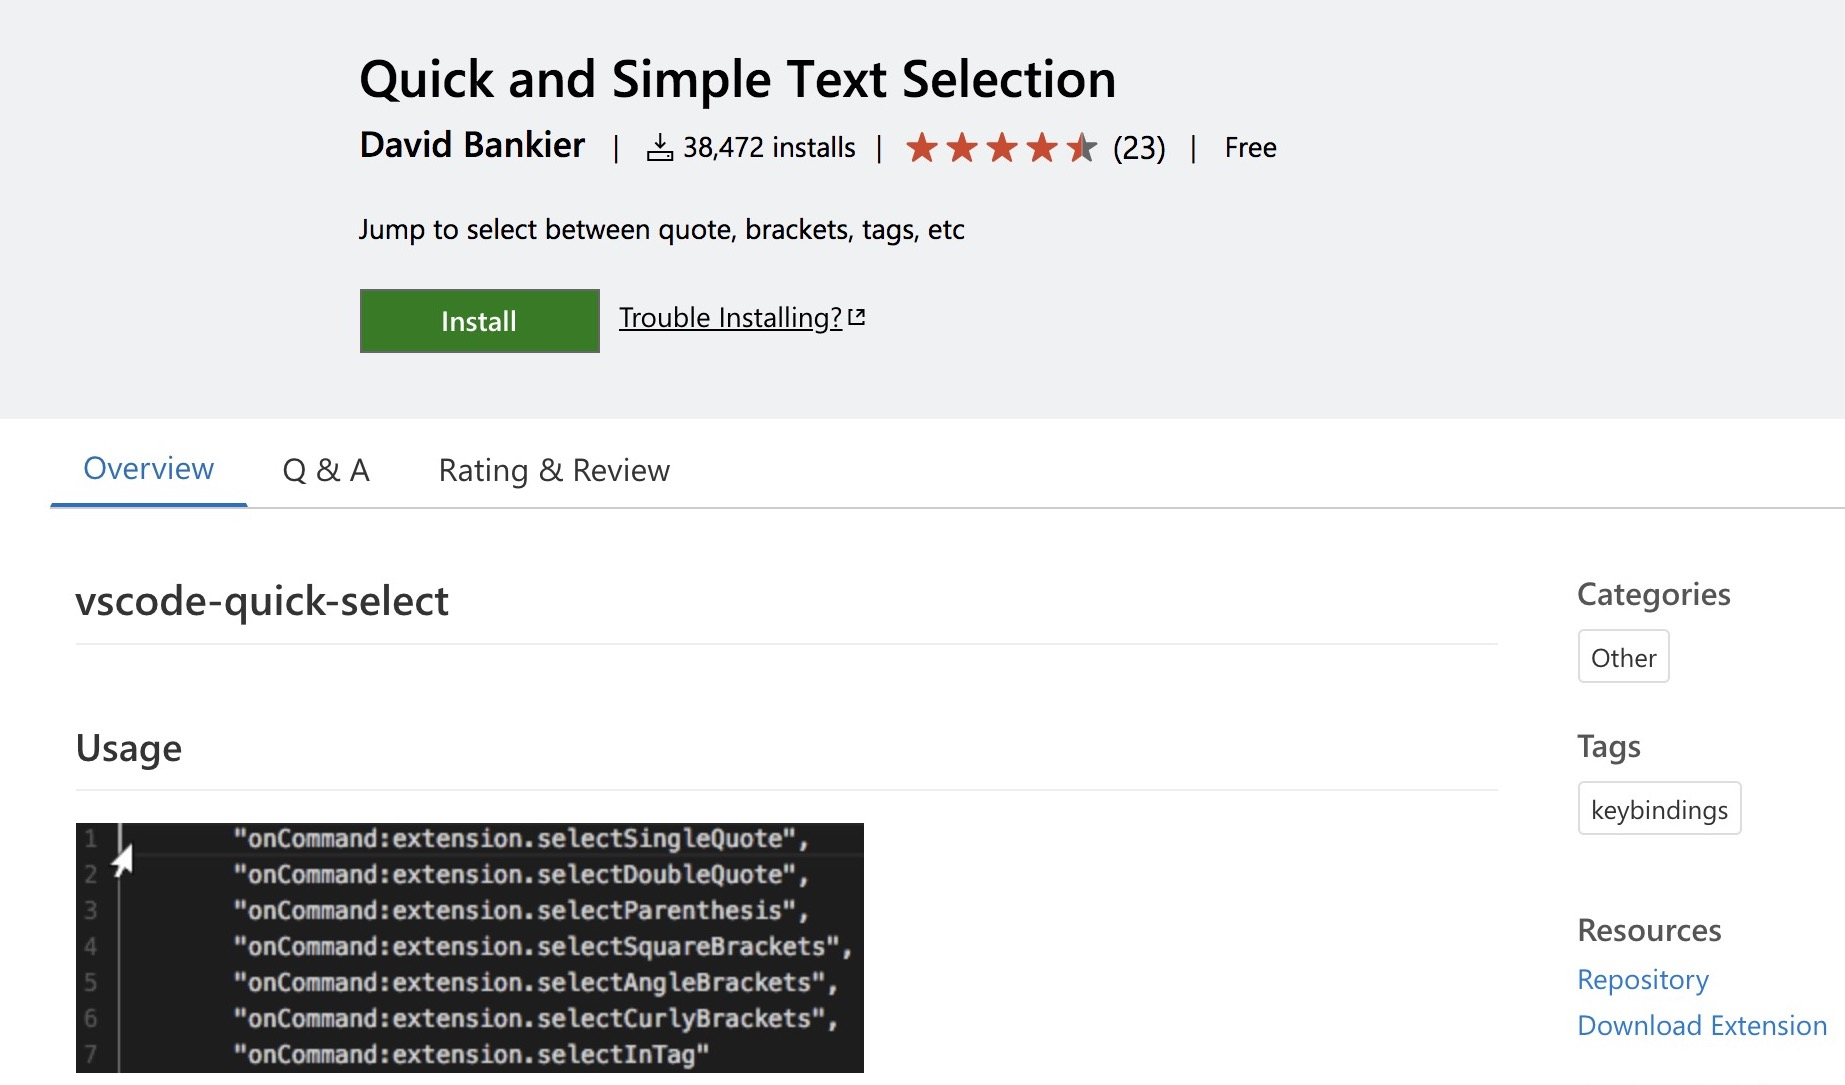 Plugins: Quick and Simple Text Selection